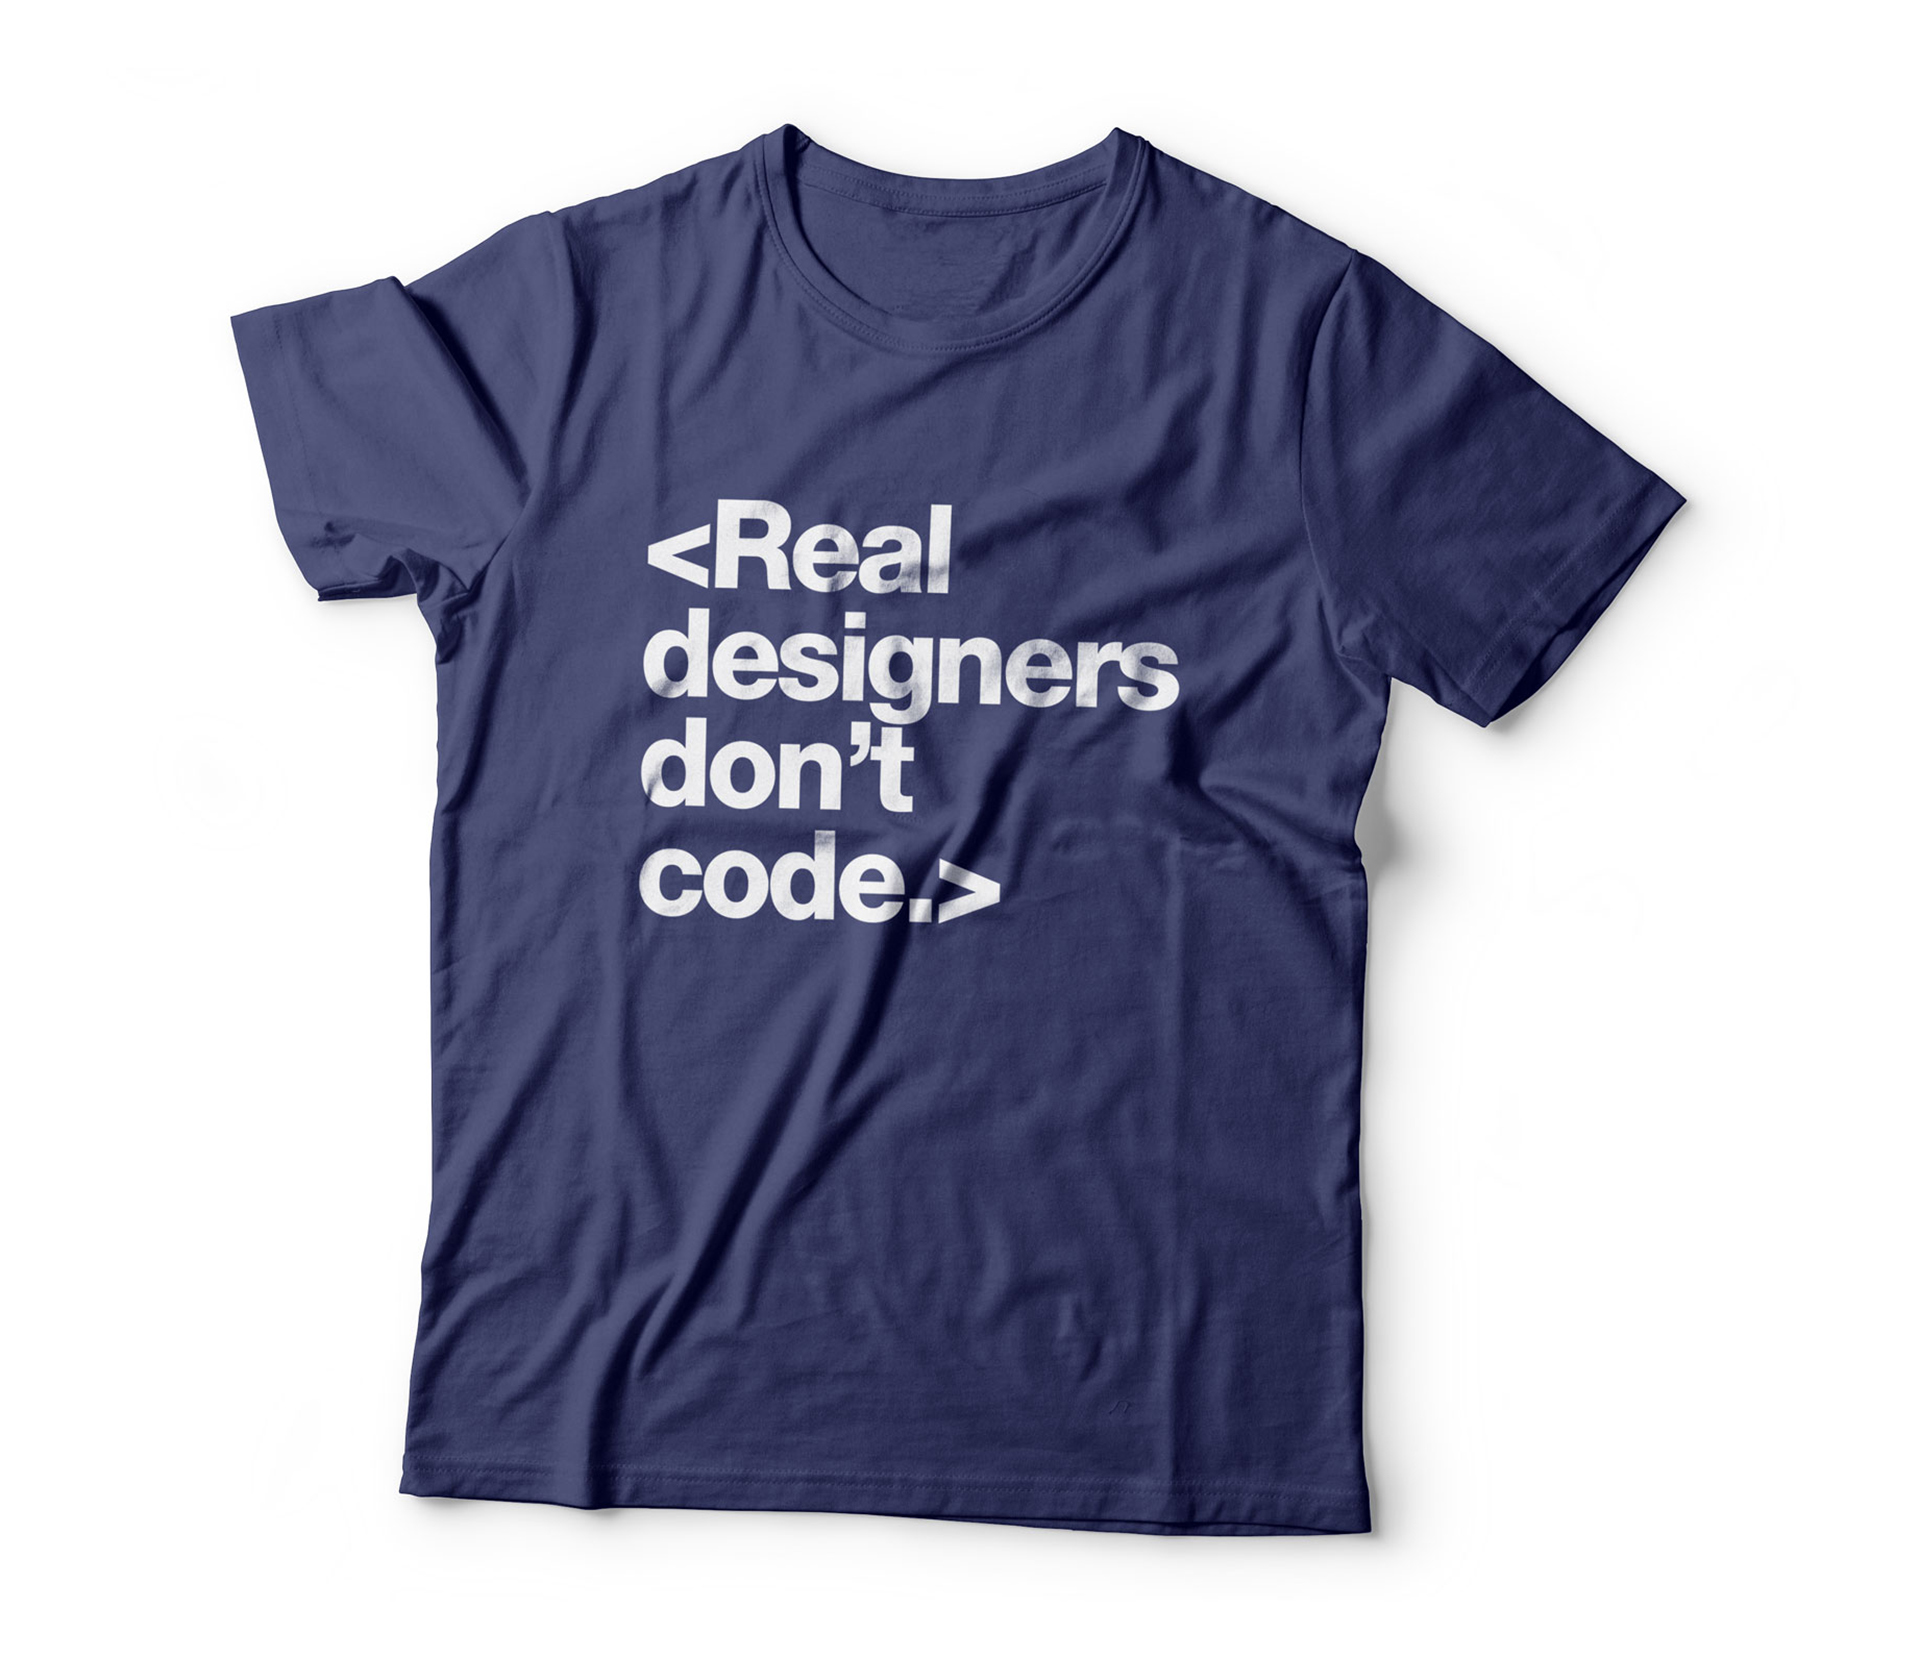 Real Designers don't Code.